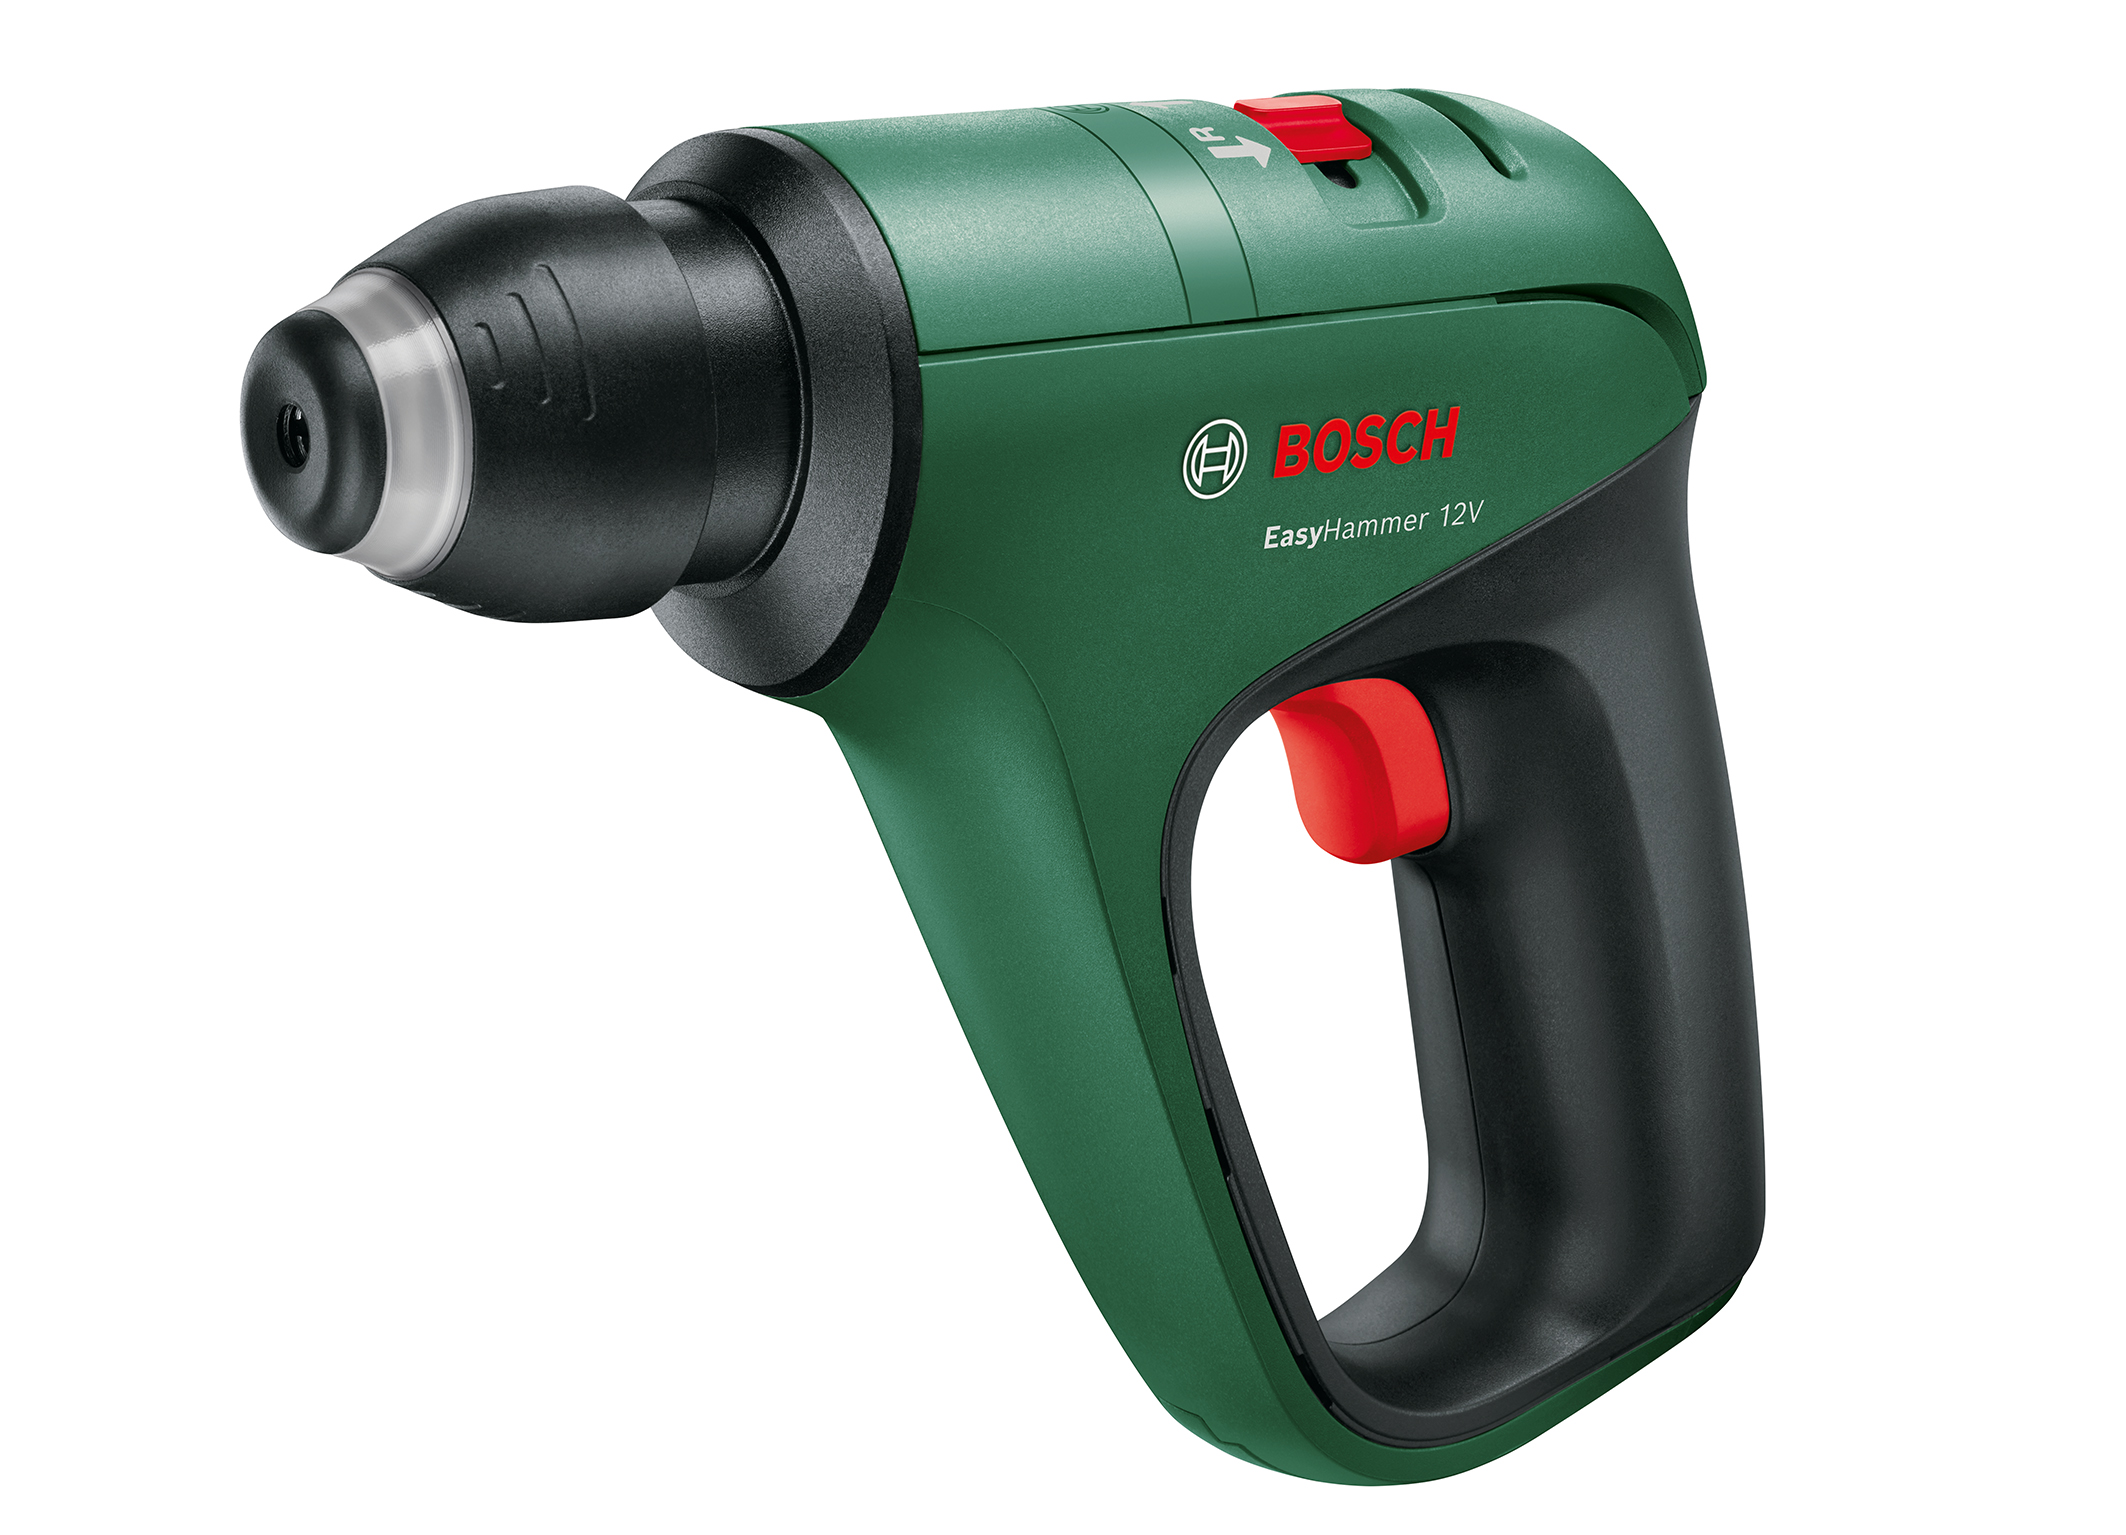 Multi-talented tool for hammering, drilling and screwdriving: Bosch EasyHammer 12V for many materials